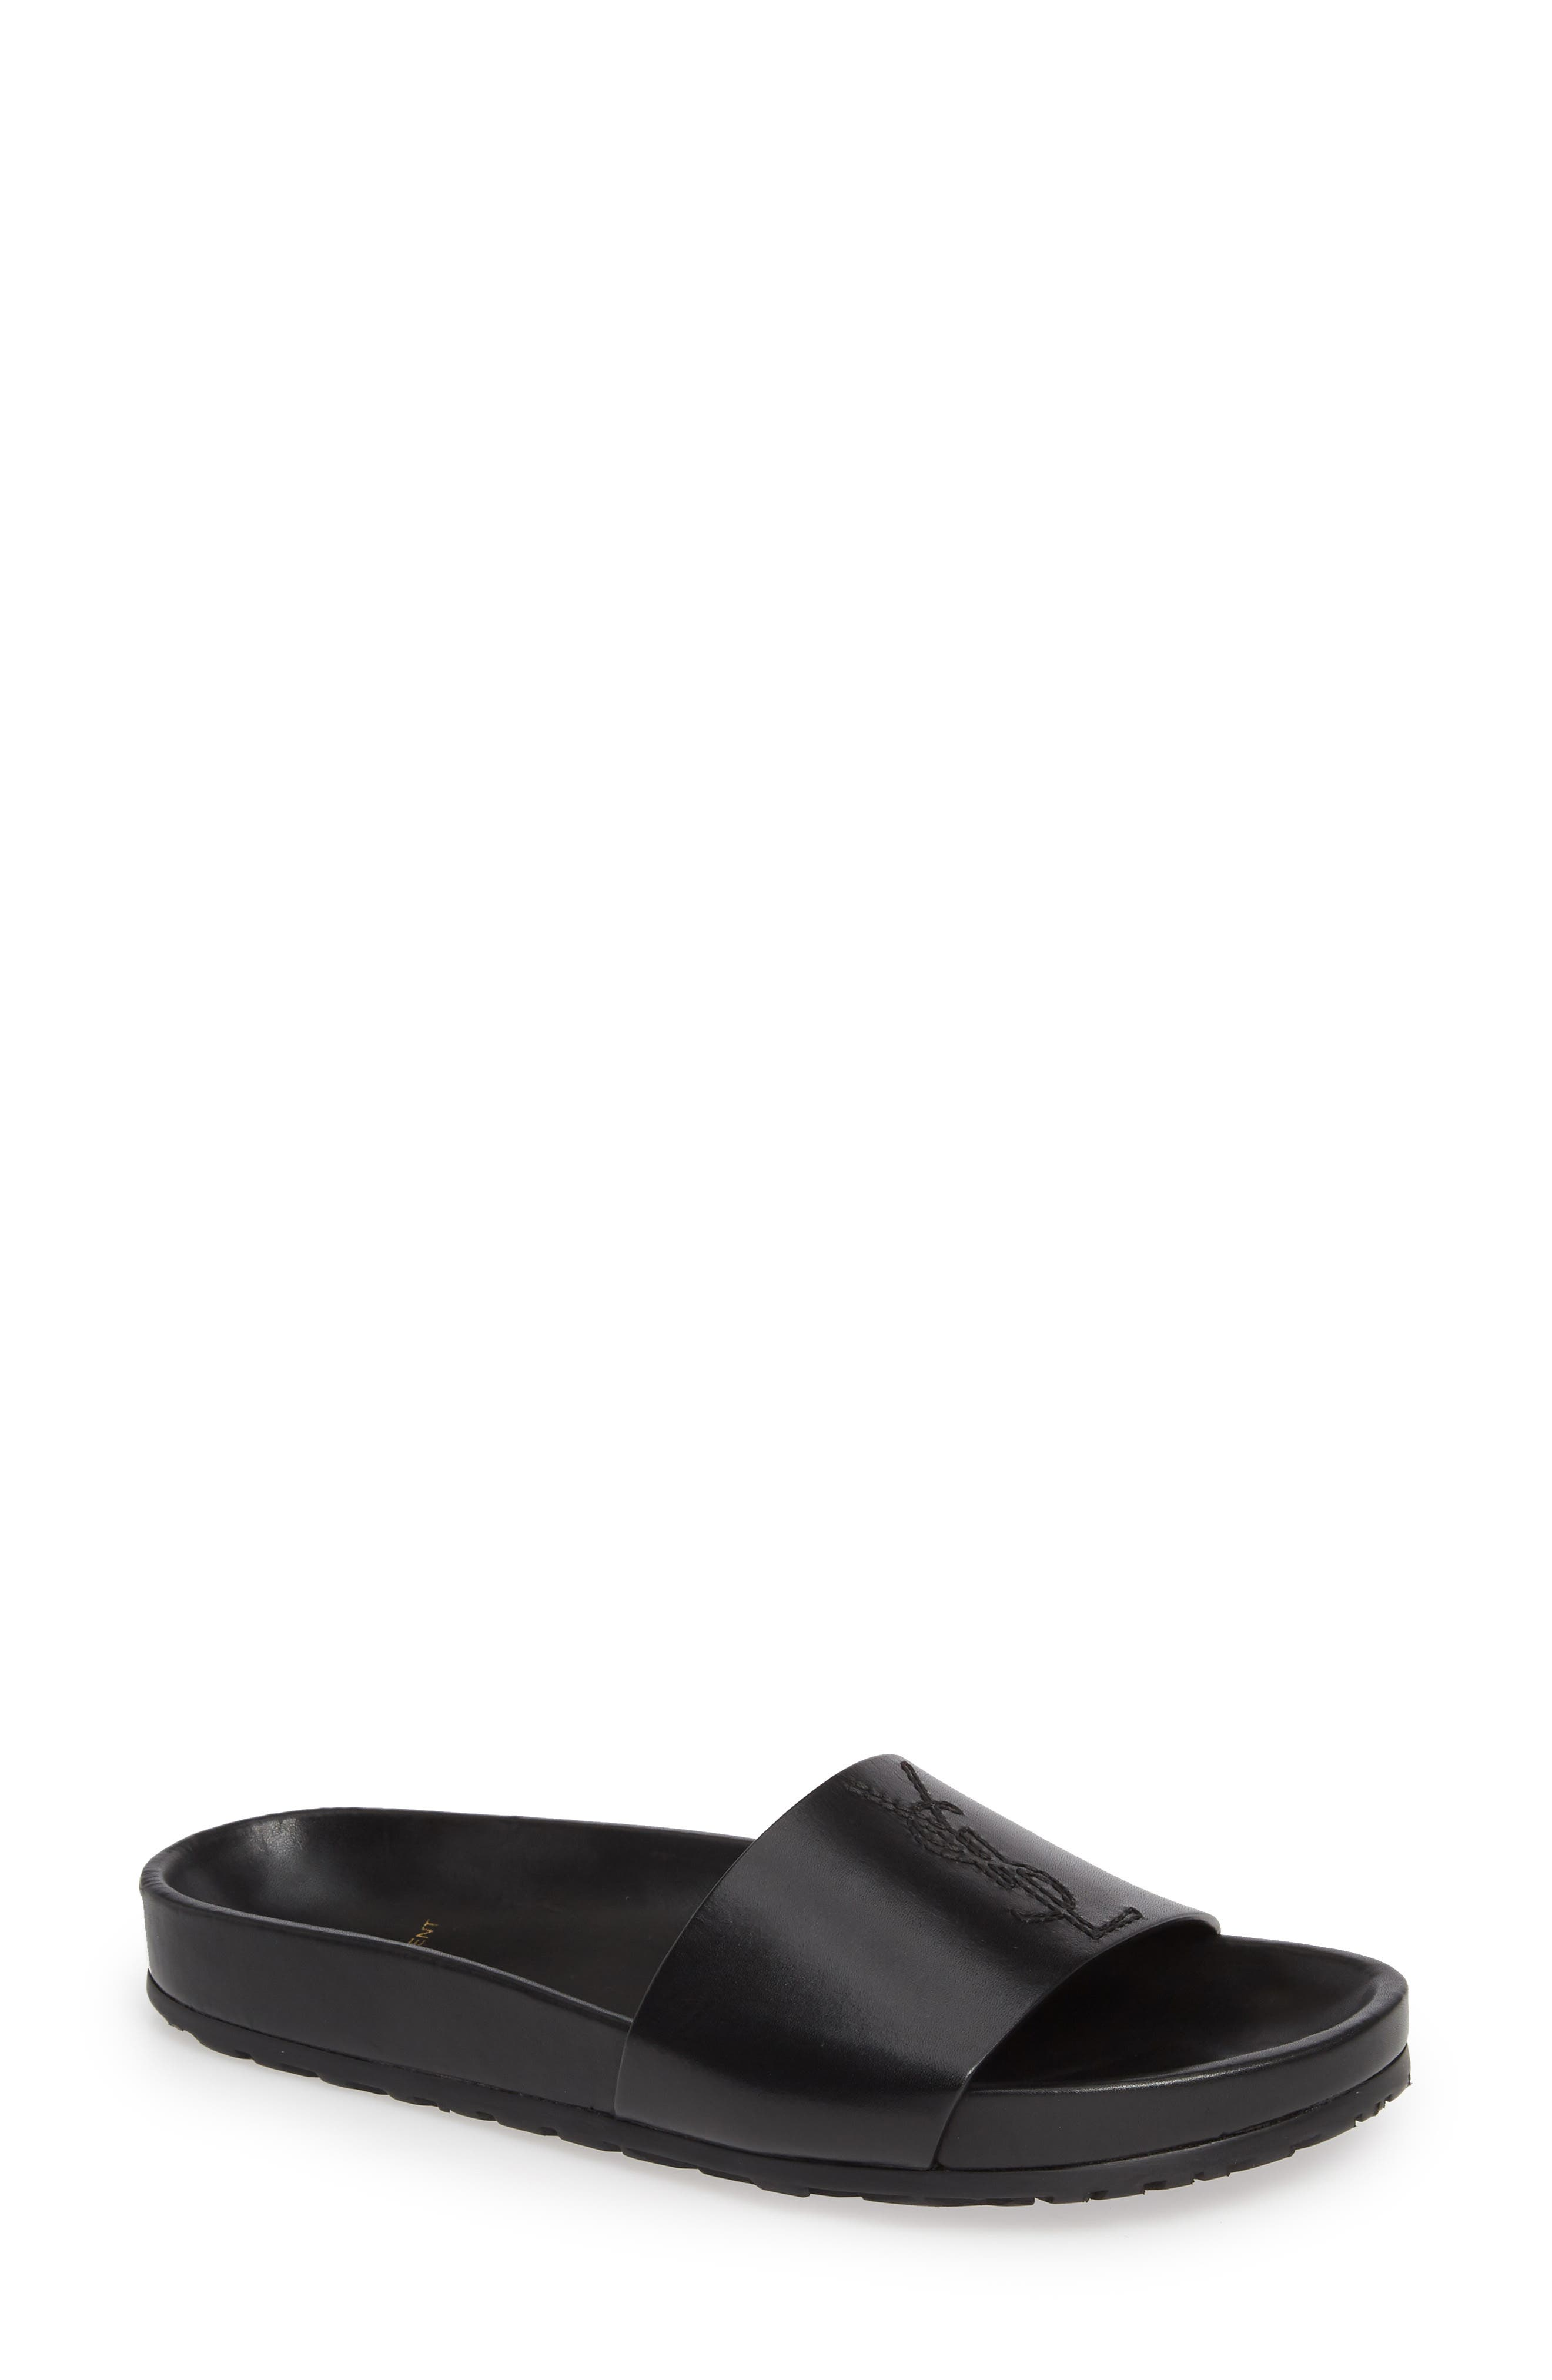 Saint Laurent Jimmy Logo Slide Sandal (Women)